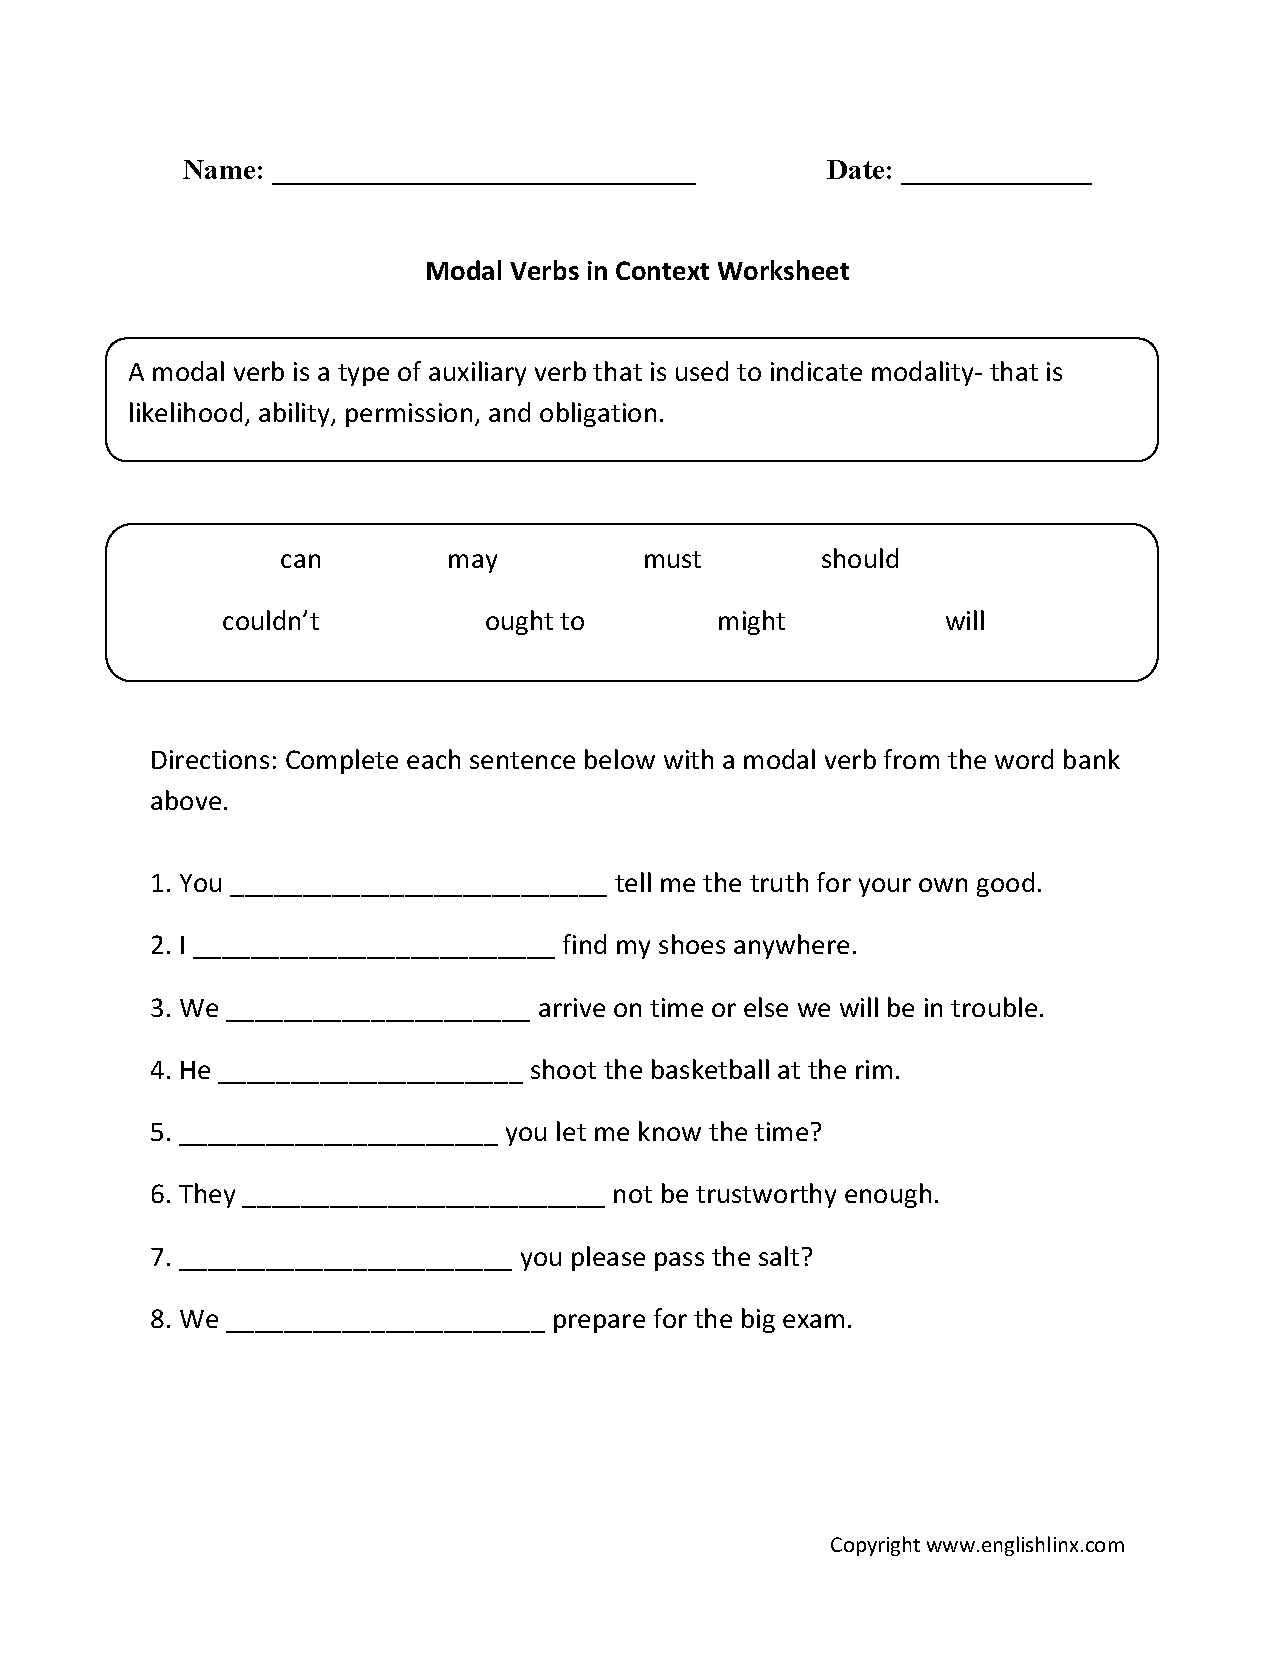 Aldiablosus  Marvellous Worksheet For Verbs  Coffemix With Licious Englishlinxcom  Verbs Worksheets With Amusing Th Grade Vocabulary Worksheets Also Tiger Rising Worksheets In Addition Graphing Calculator Worksheets And Chemistry Naming Compounds Worksheet Answers As Well As Psat Math Practice Worksheets Additionally Prefixes And Suffixes Worksheets Th Grade From Coffemixcom With Aldiablosus  Licious Worksheet For Verbs  Coffemix With Amusing Englishlinxcom  Verbs Worksheets And Marvellous Th Grade Vocabulary Worksheets Also Tiger Rising Worksheets In Addition Graphing Calculator Worksheets From Coffemixcom